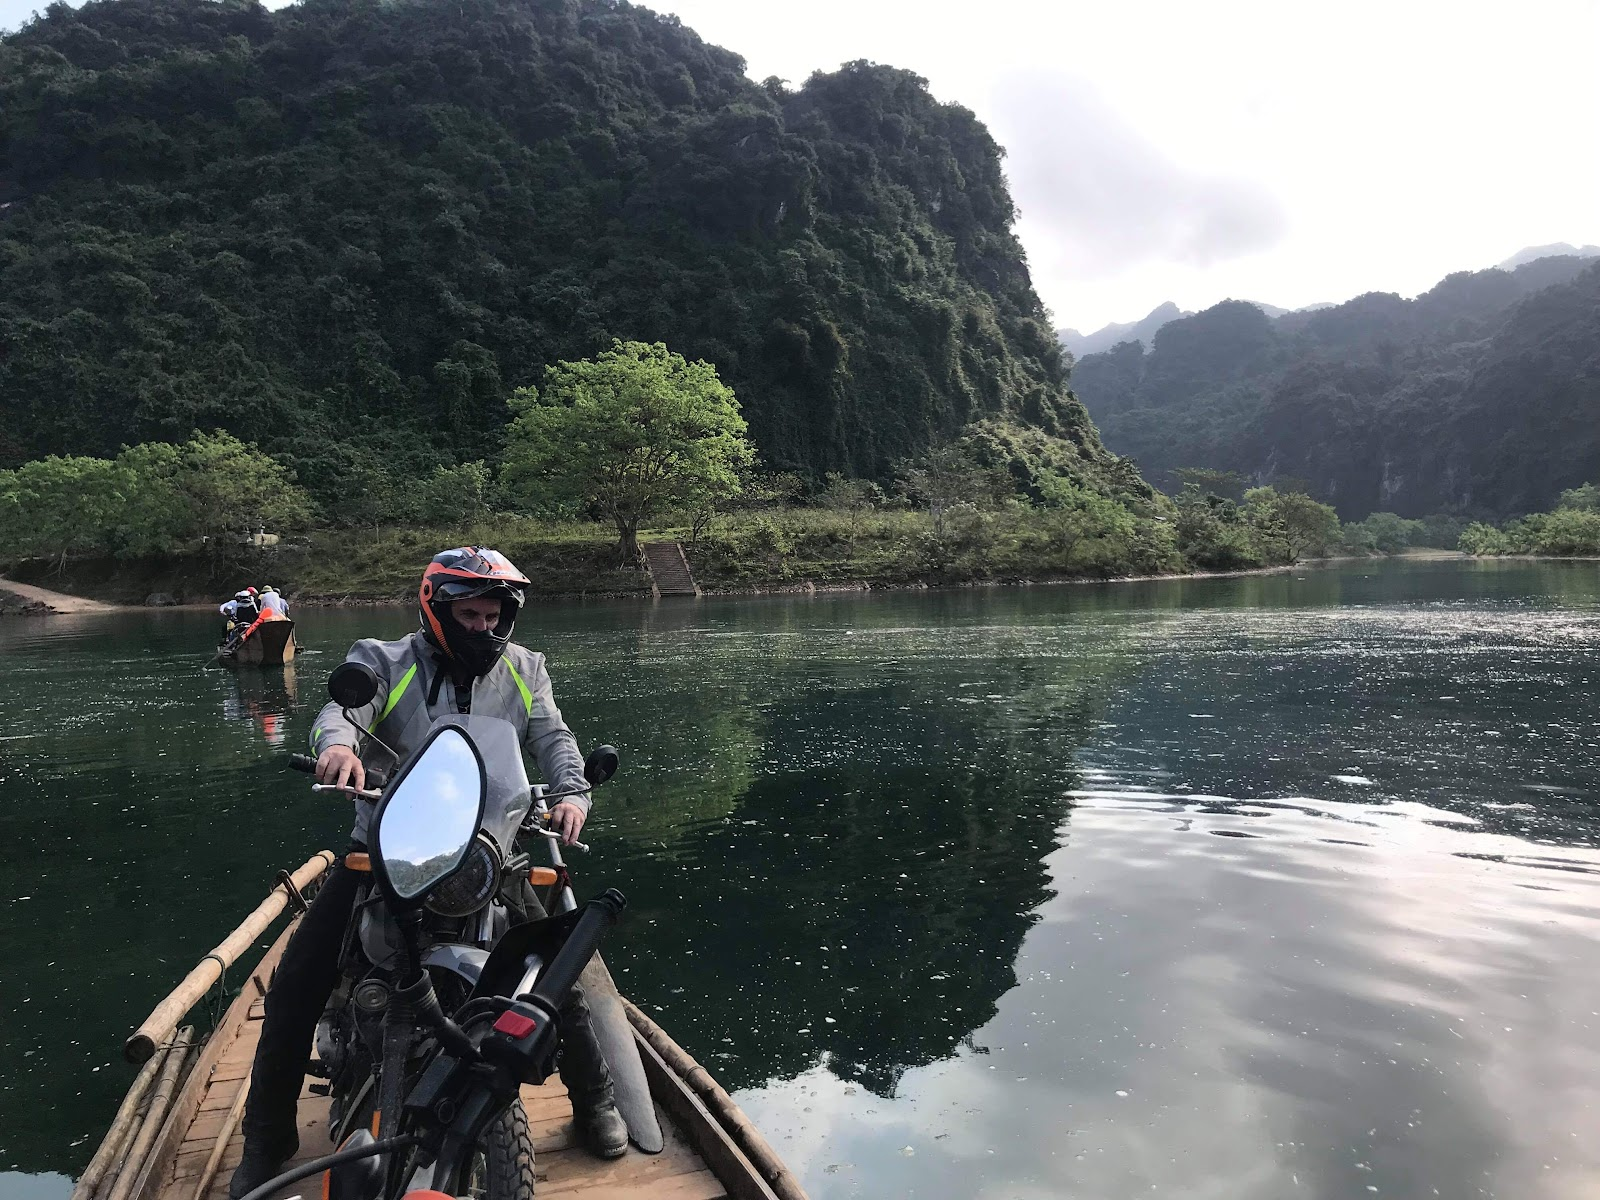 motorcycle on a boat going to Phong Nha